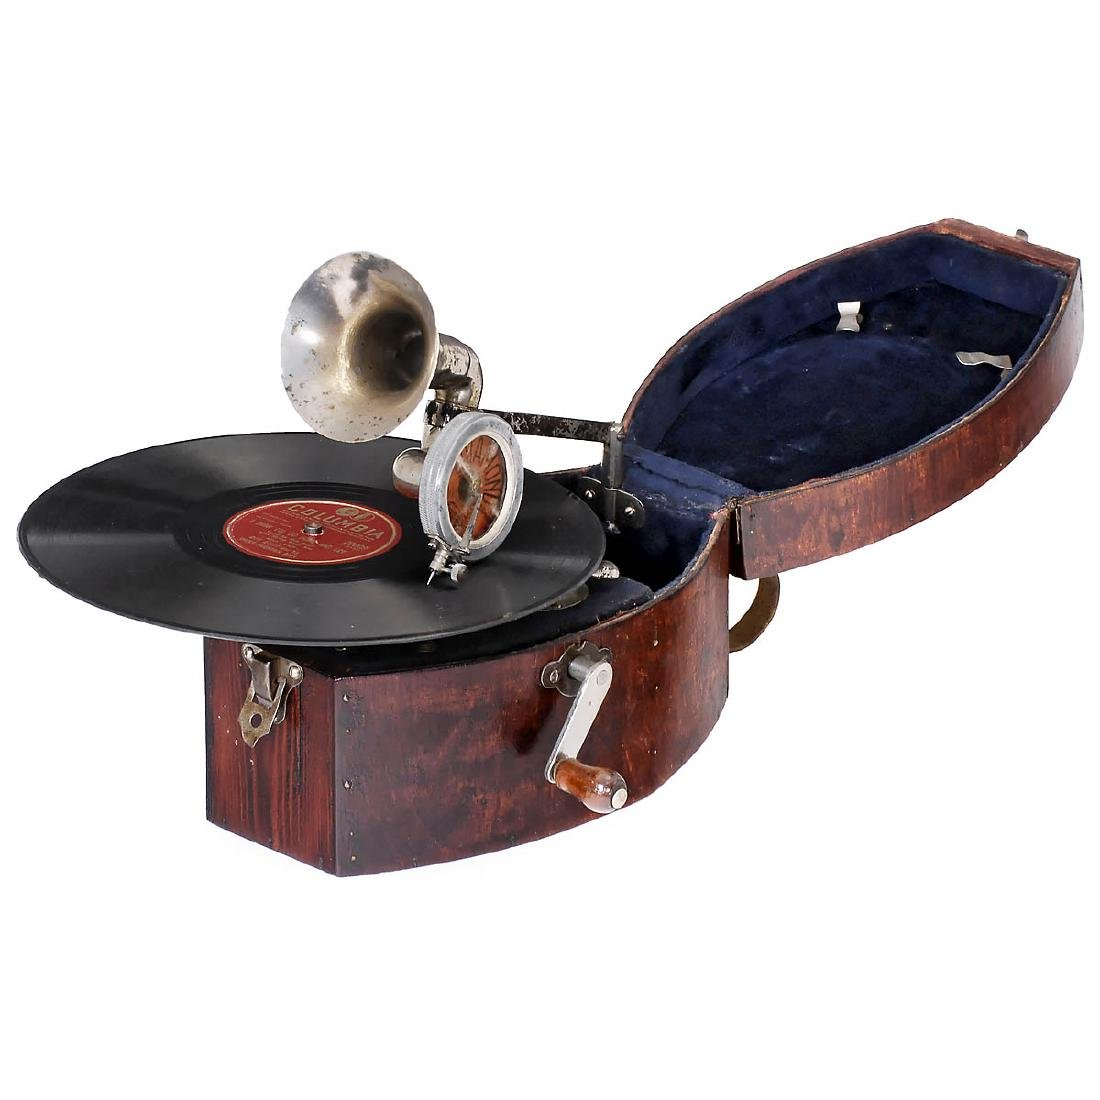 Small Portable Gramophone, c. 1930